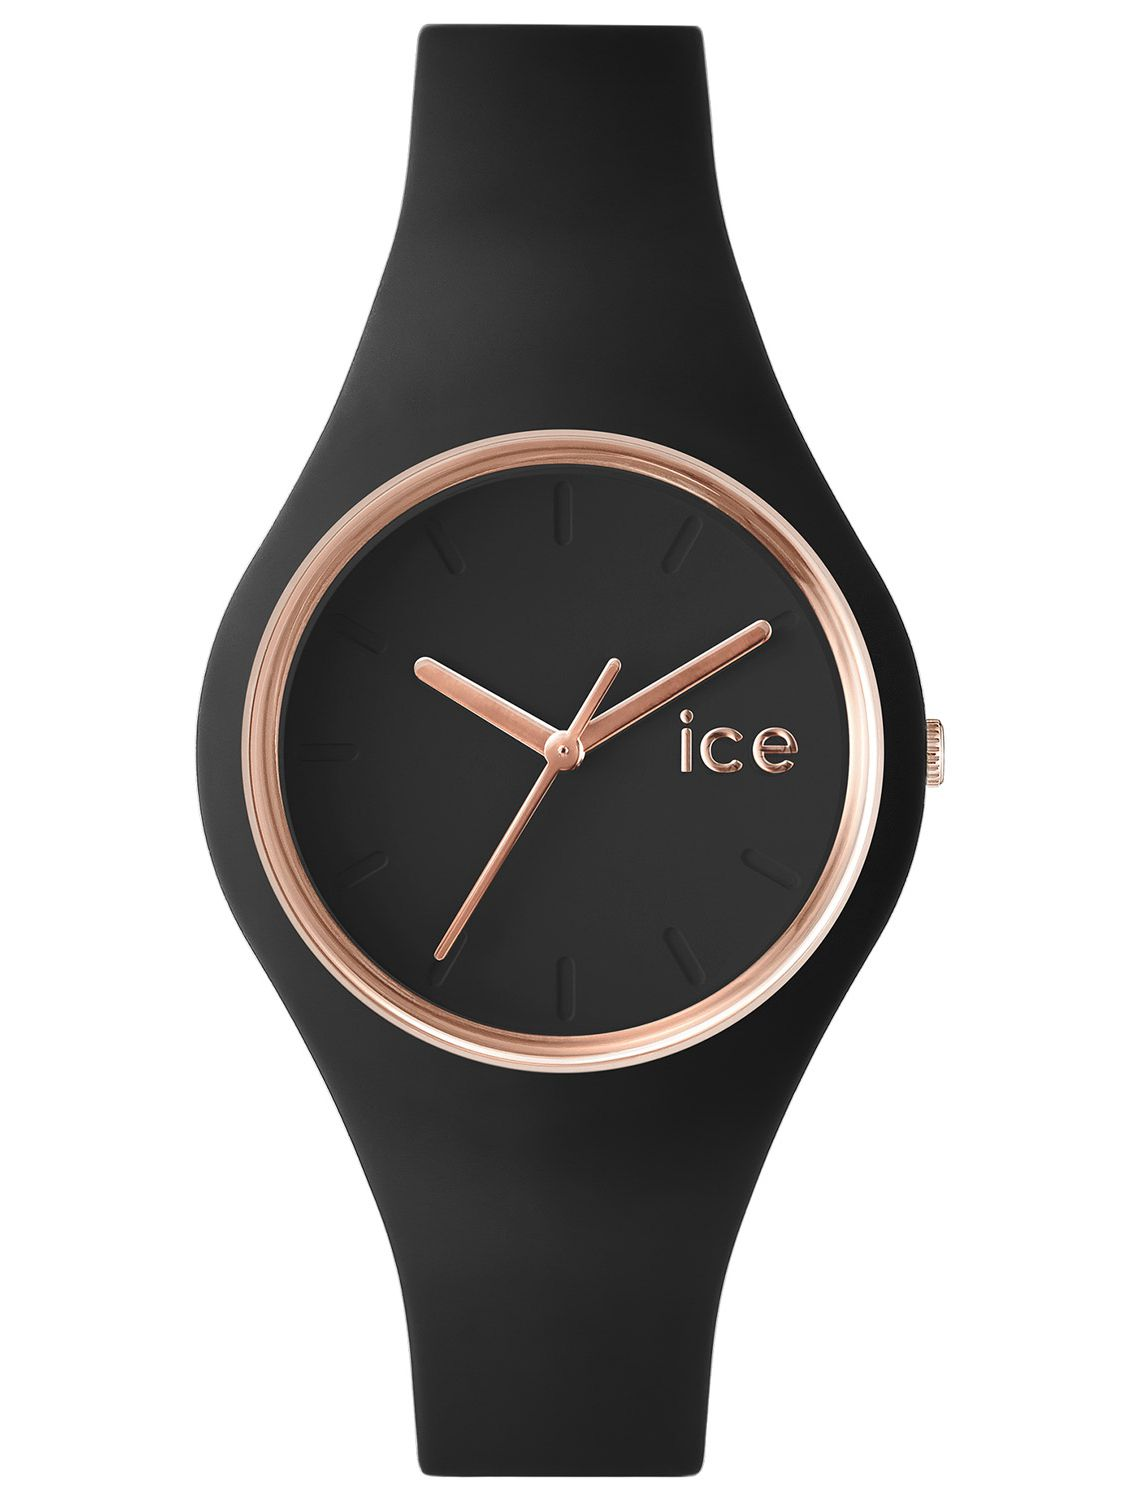 ice watch damenuhr ice glam schwarz ros gold m 000980. Black Bedroom Furniture Sets. Home Design Ideas